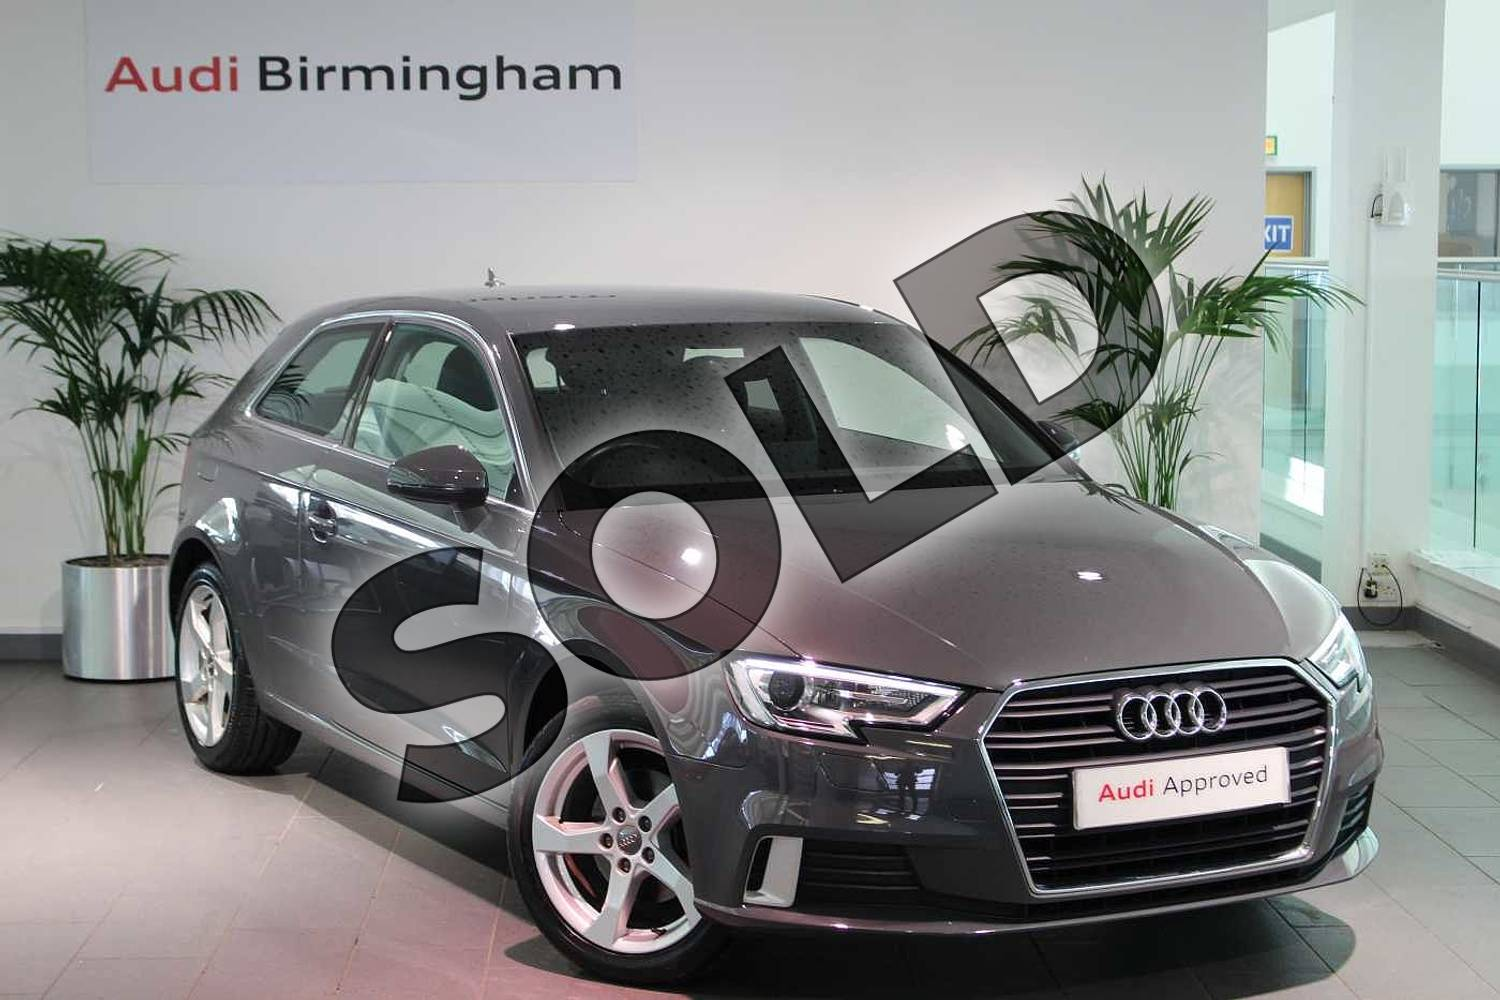 2016 Audi A3 Hatchback 1.4 TFSI Sport 3dr in Nano Grey Metallic at Birmingham Audi